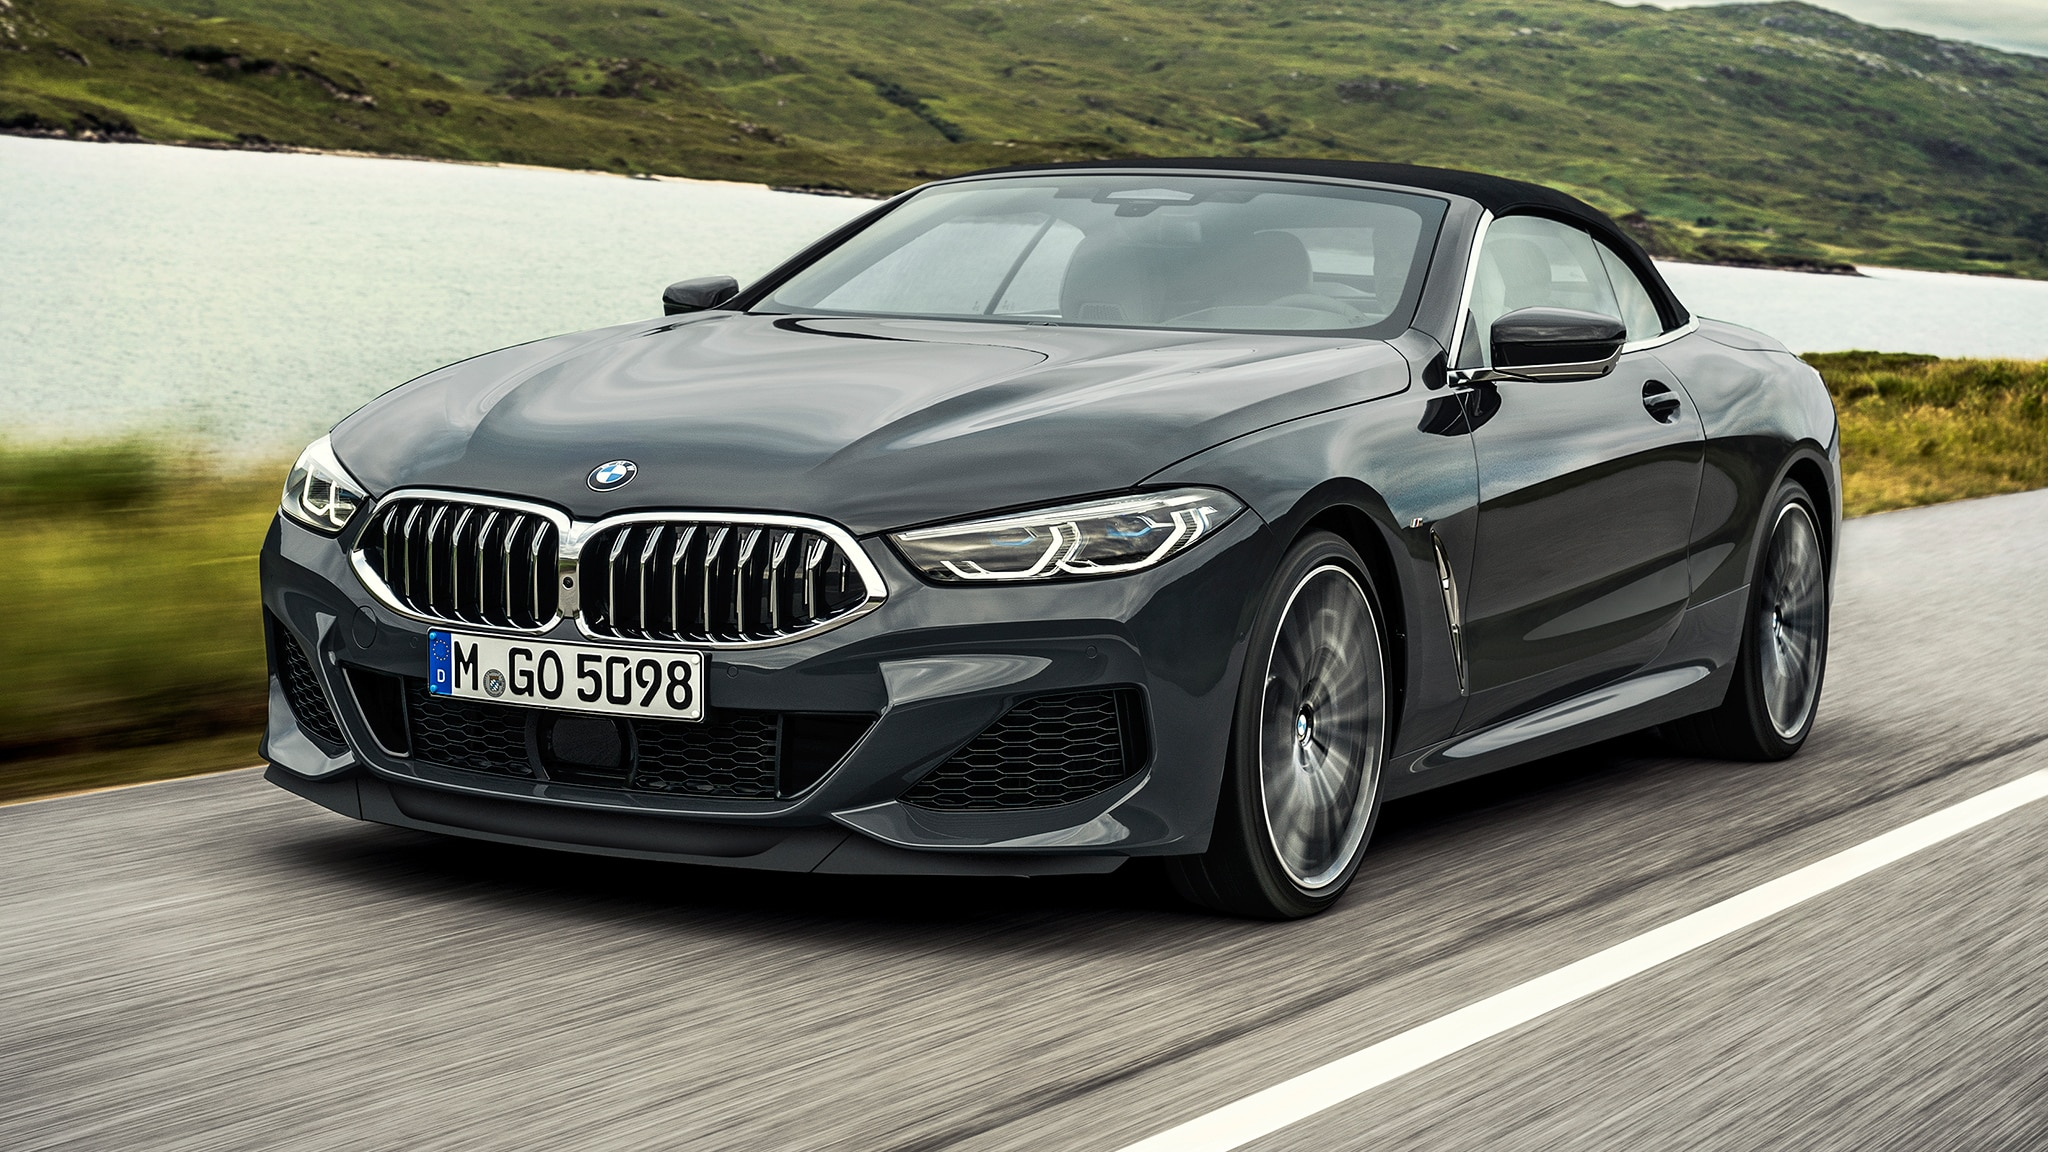 2019 BMW M850i Convertible Top Up In Motion